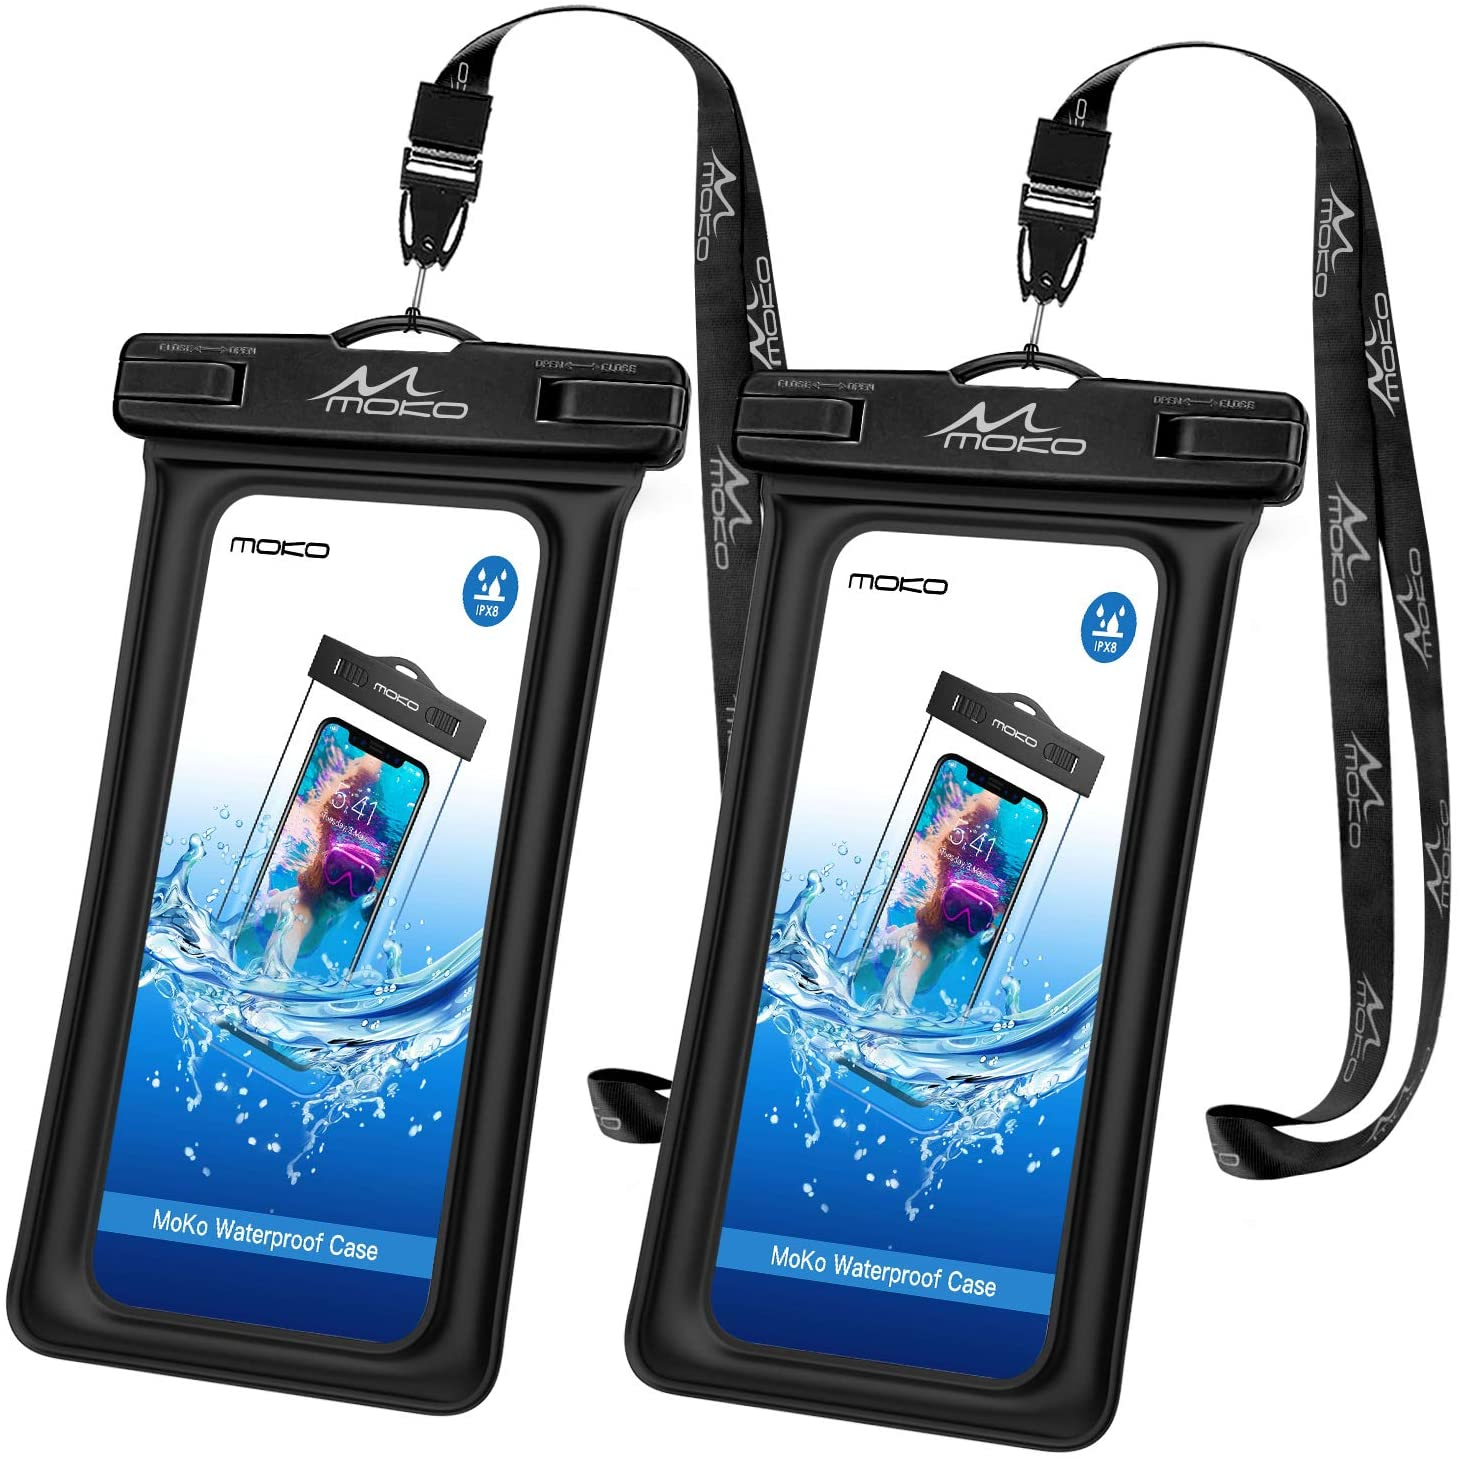 MoKo Floating Waterproof Phone Pouch Holder [2 Pack], Floatable Phone Case Dry Bag with Lanyard Compatible with iPhone 13/13 Pro Max/iPhone 12/12 Pro Max/11 Pro/X/Xr/Xs Max/8, Samsung S21/S10/S9/S8